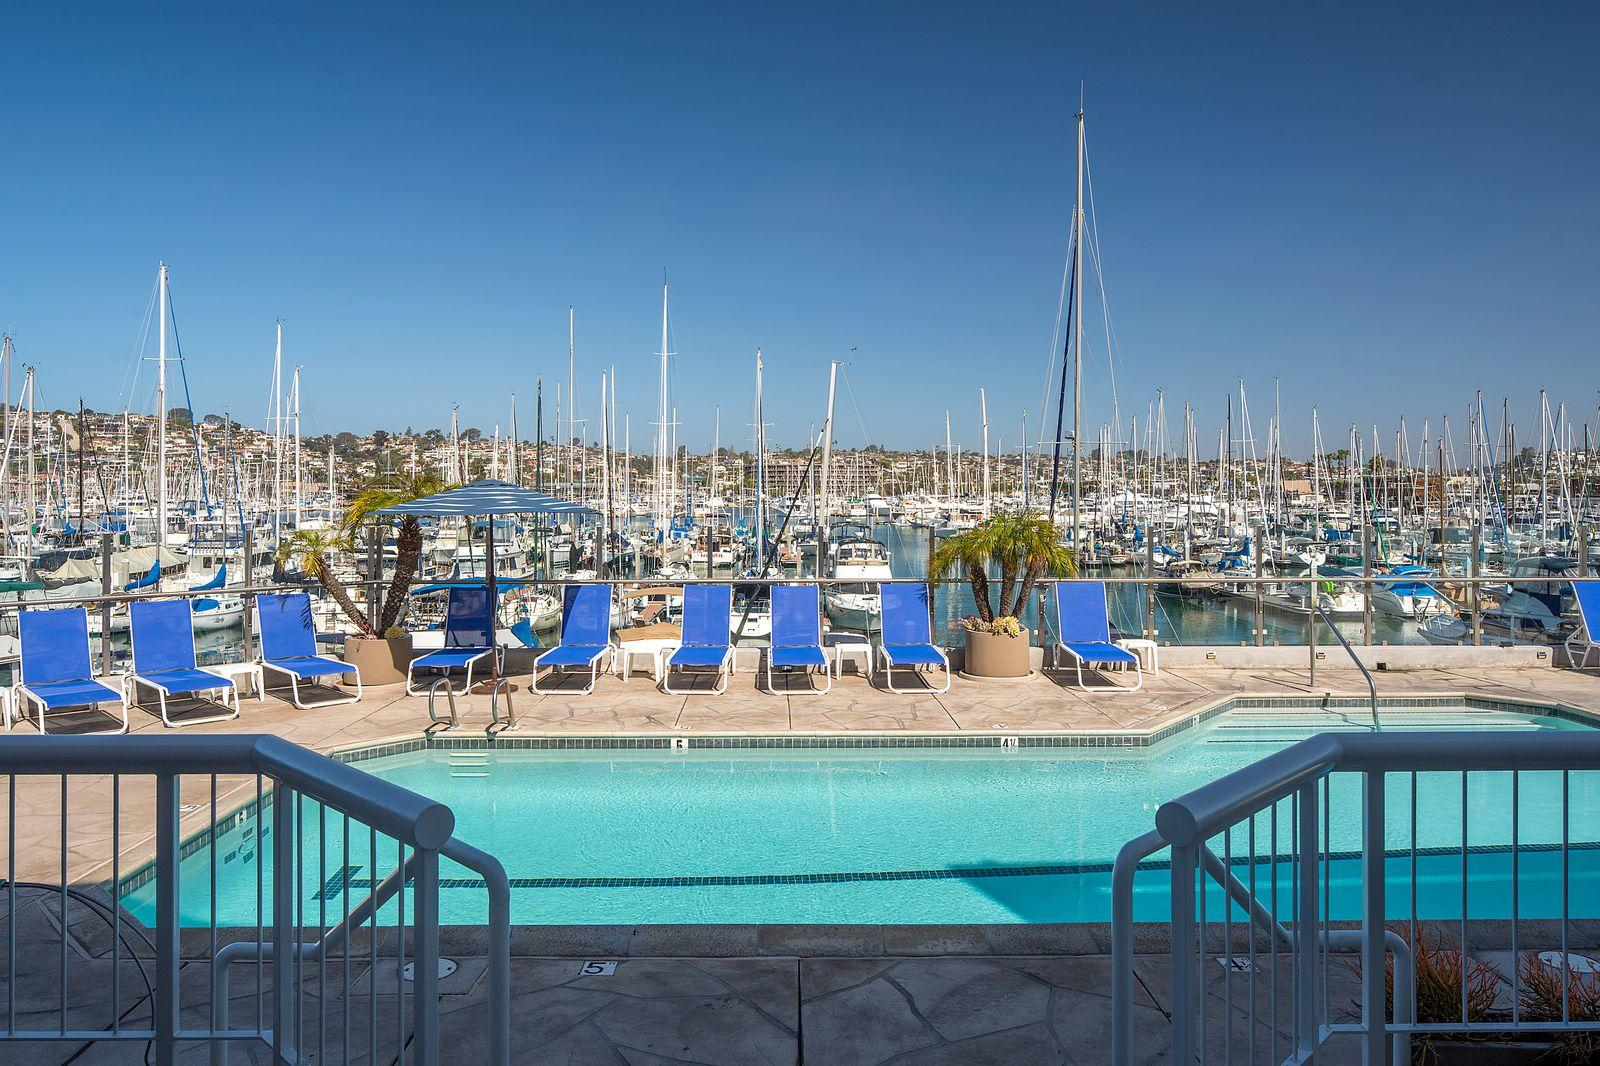 Pool with marina view at a hotel in San Diego California